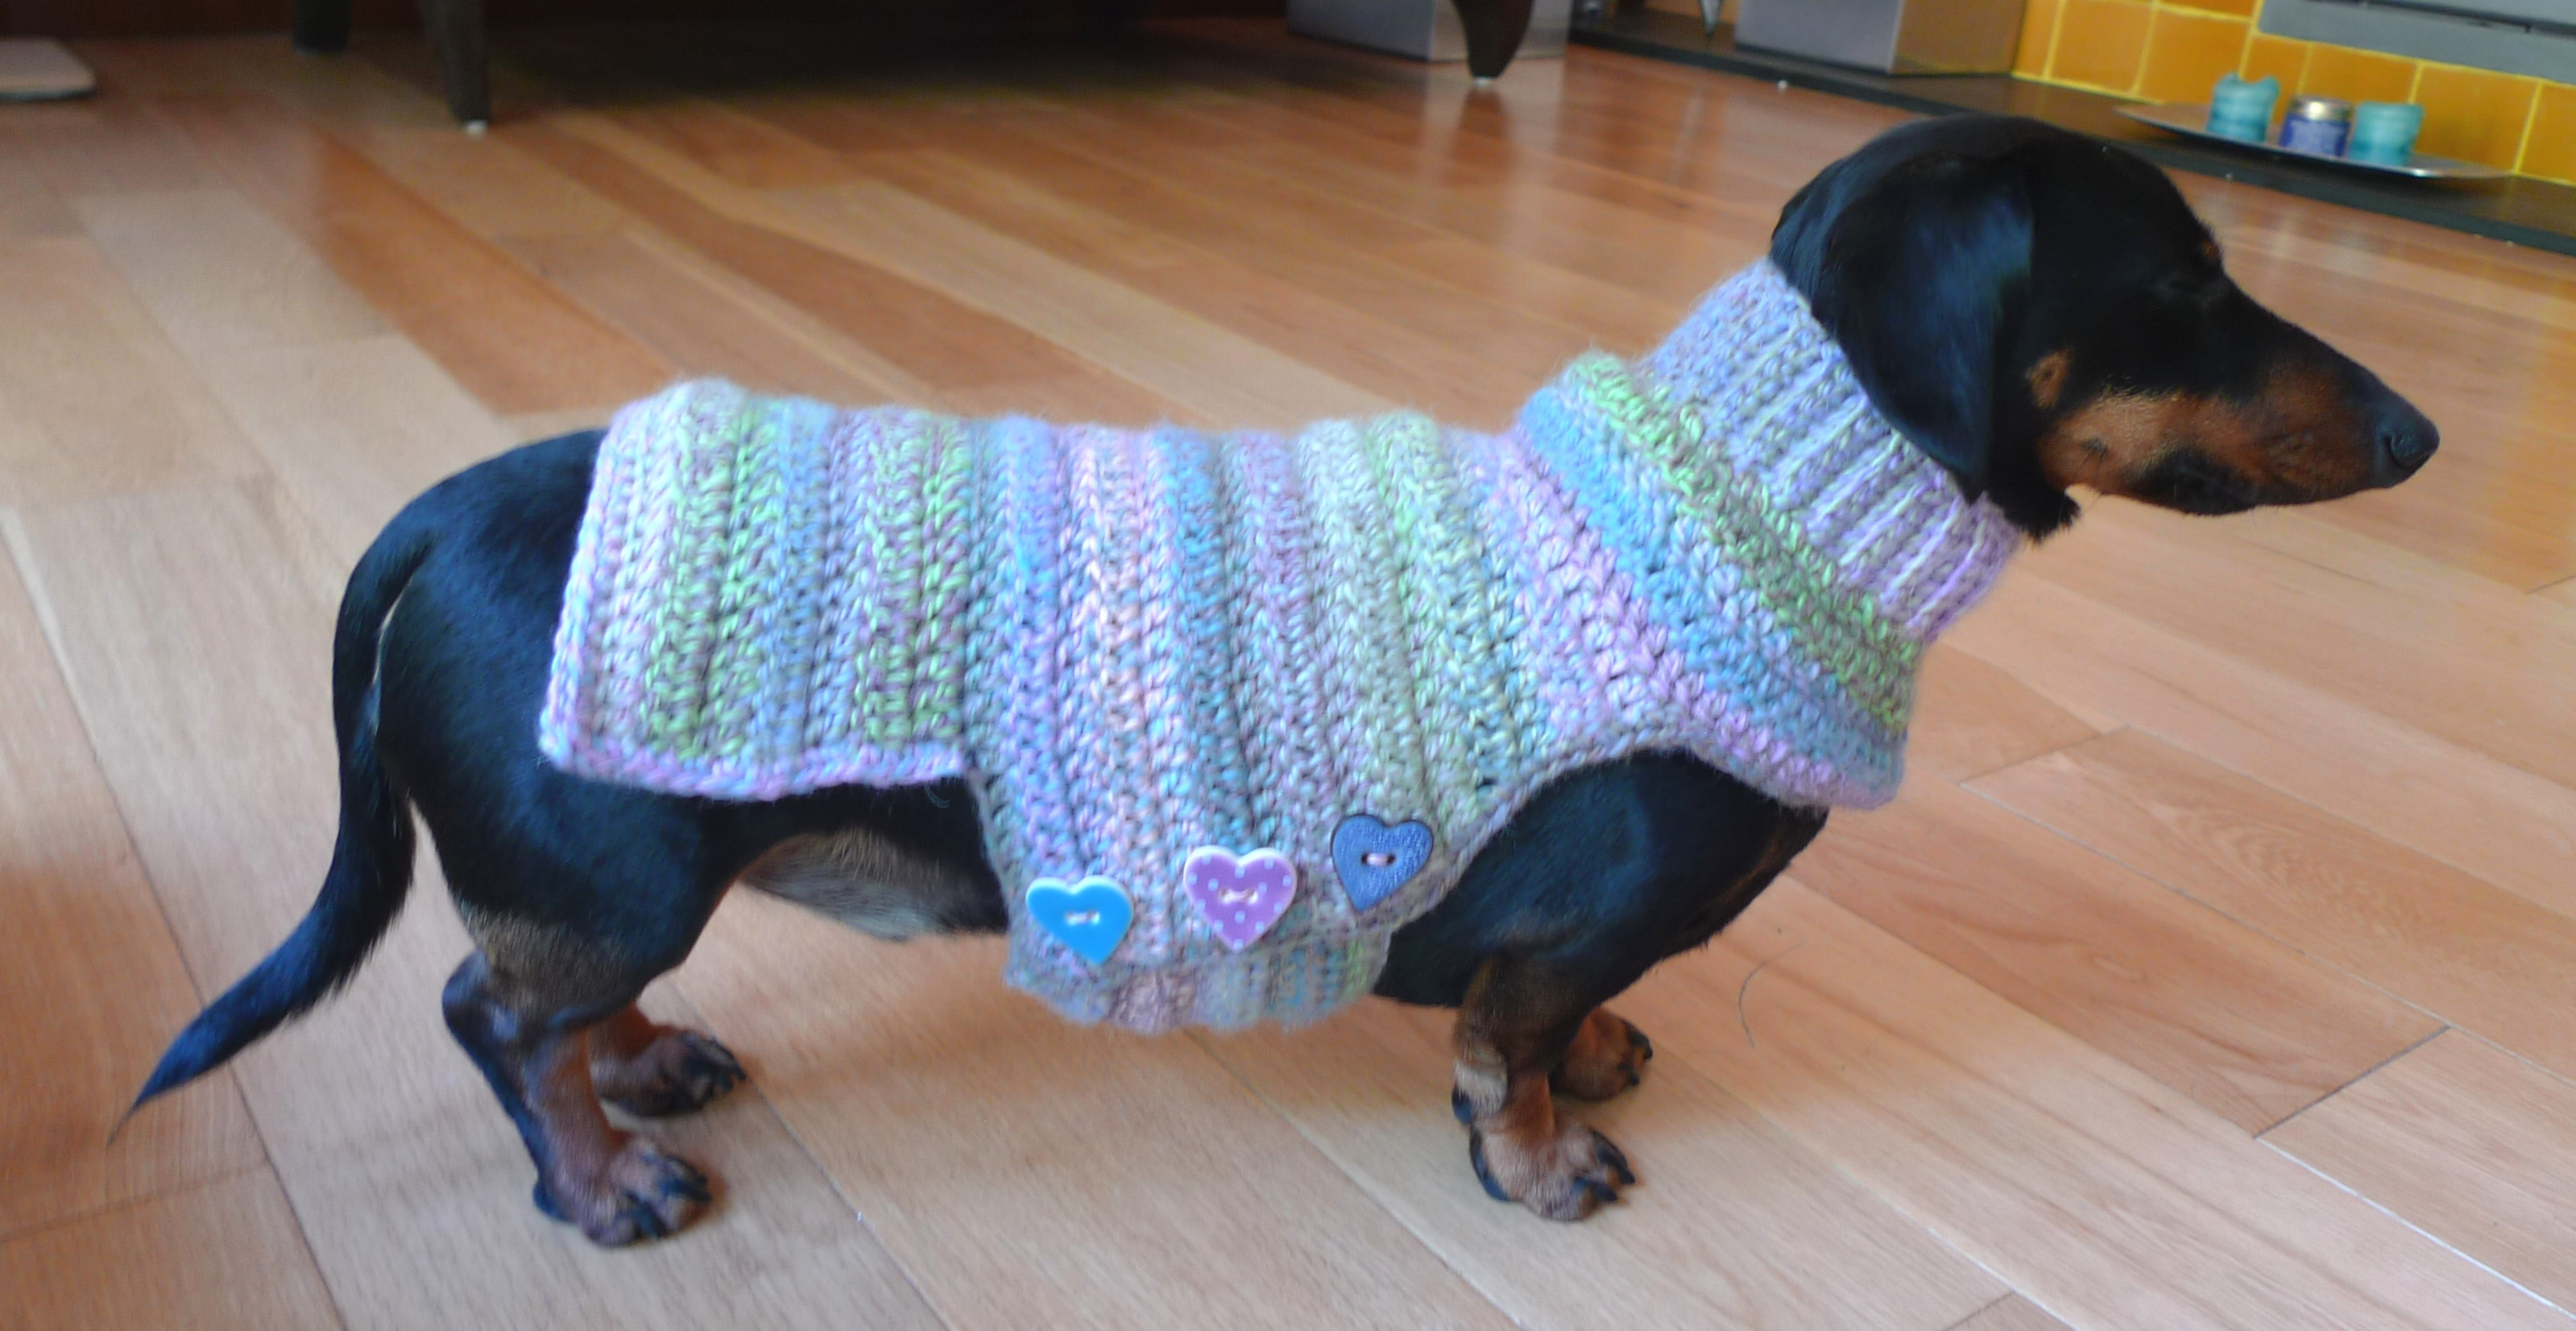 Crochet Dog Sweater with Legs Best Of Crochet Dog Sweater Pattern Dachshund Crochet and Knit Of Gorgeous 40 Images Crochet Dog Sweater with Legs